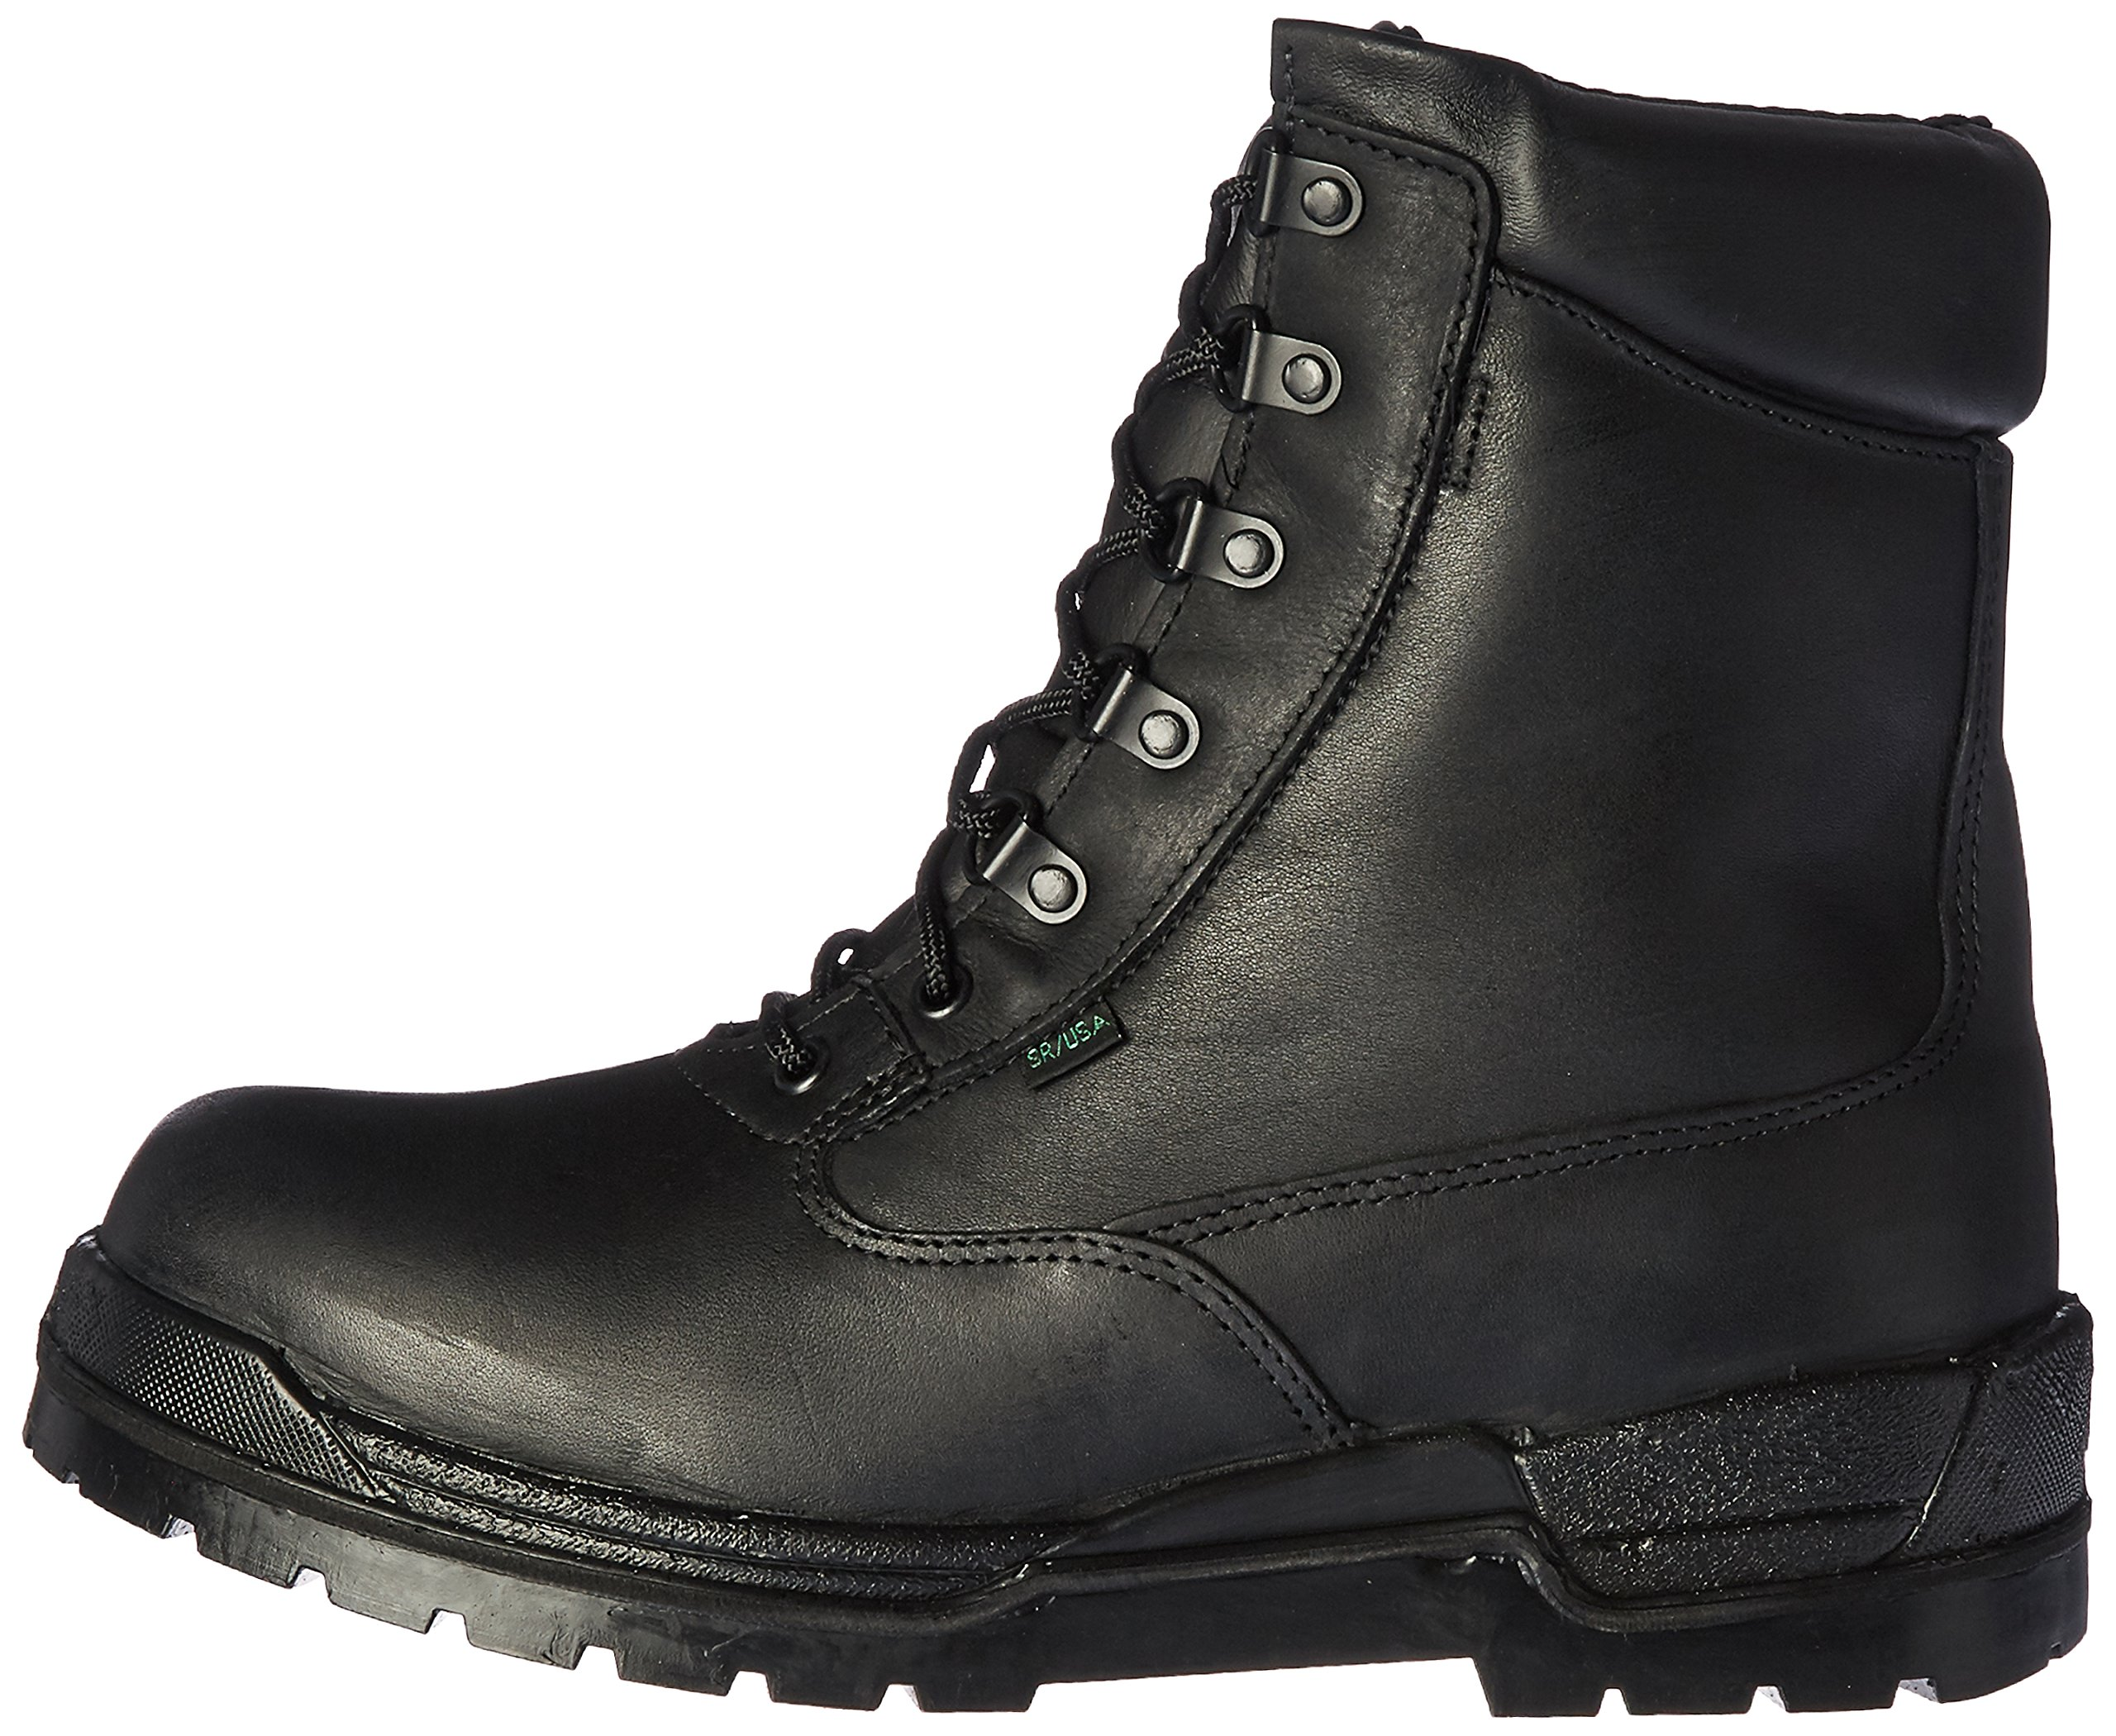 Rocky Men's 6 Inch Postal 8132-1 Slip Resistant Work Boot,Black,12 XW US by Rocky (Image #5)